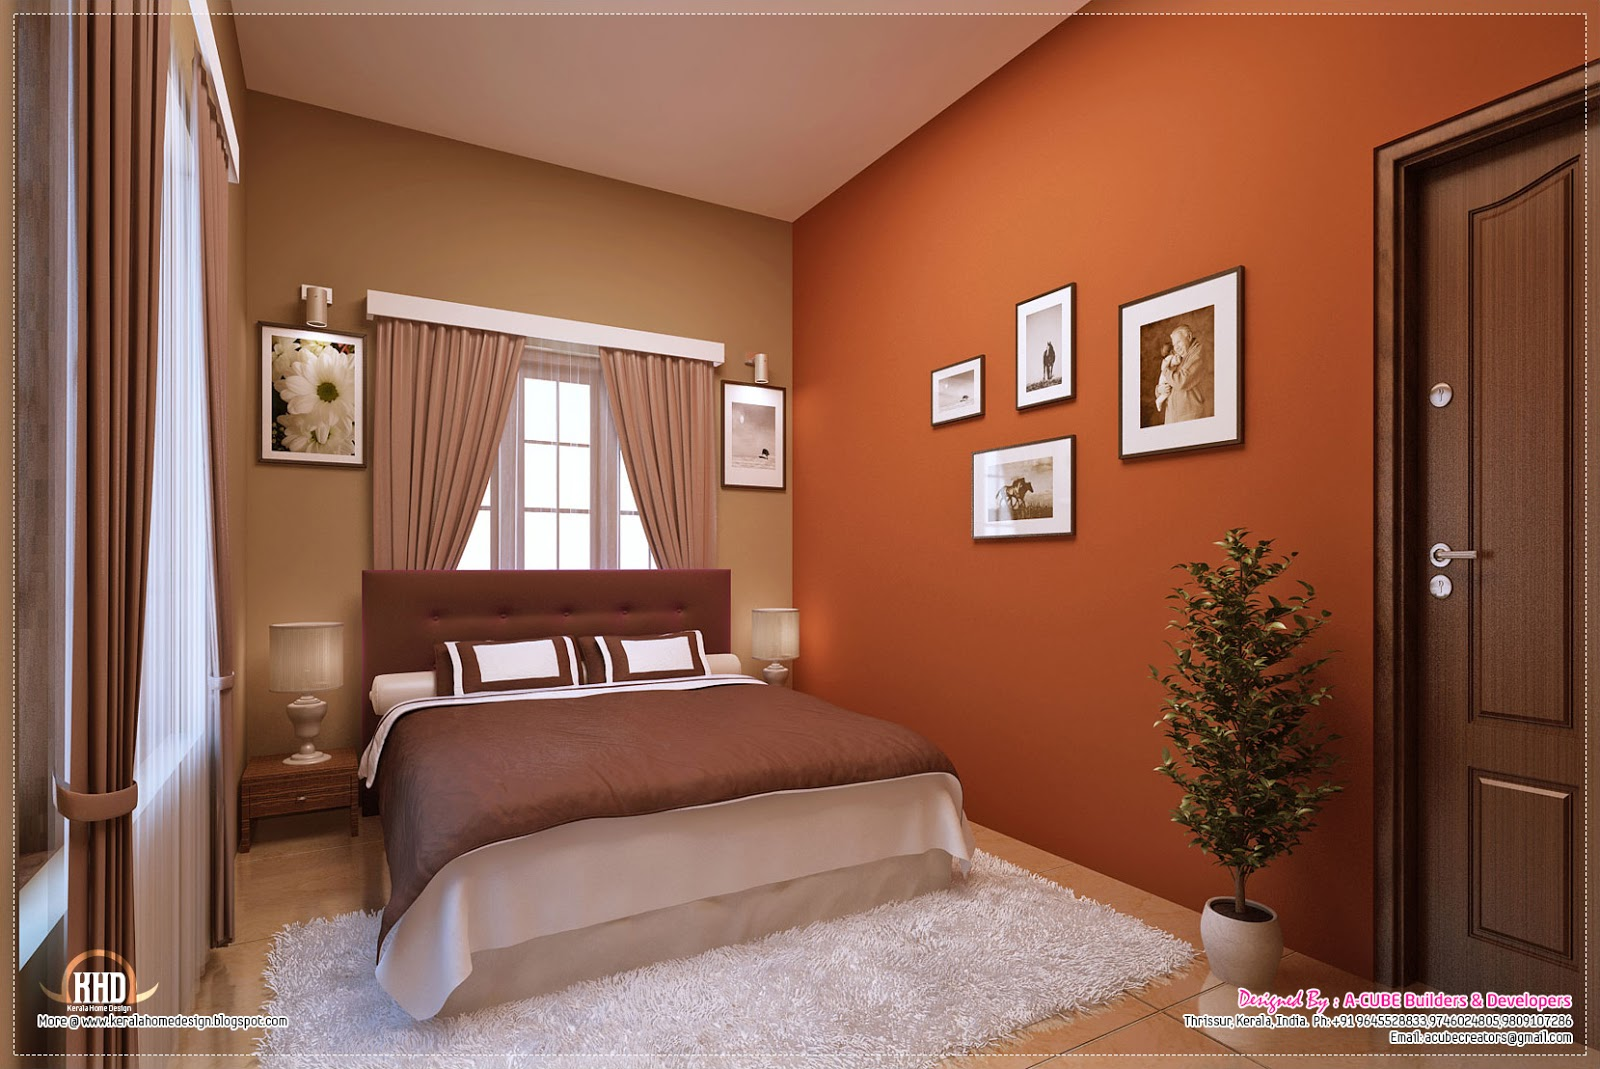 Awesome interior decoration ideas home kerala plans for Bedroom interior images